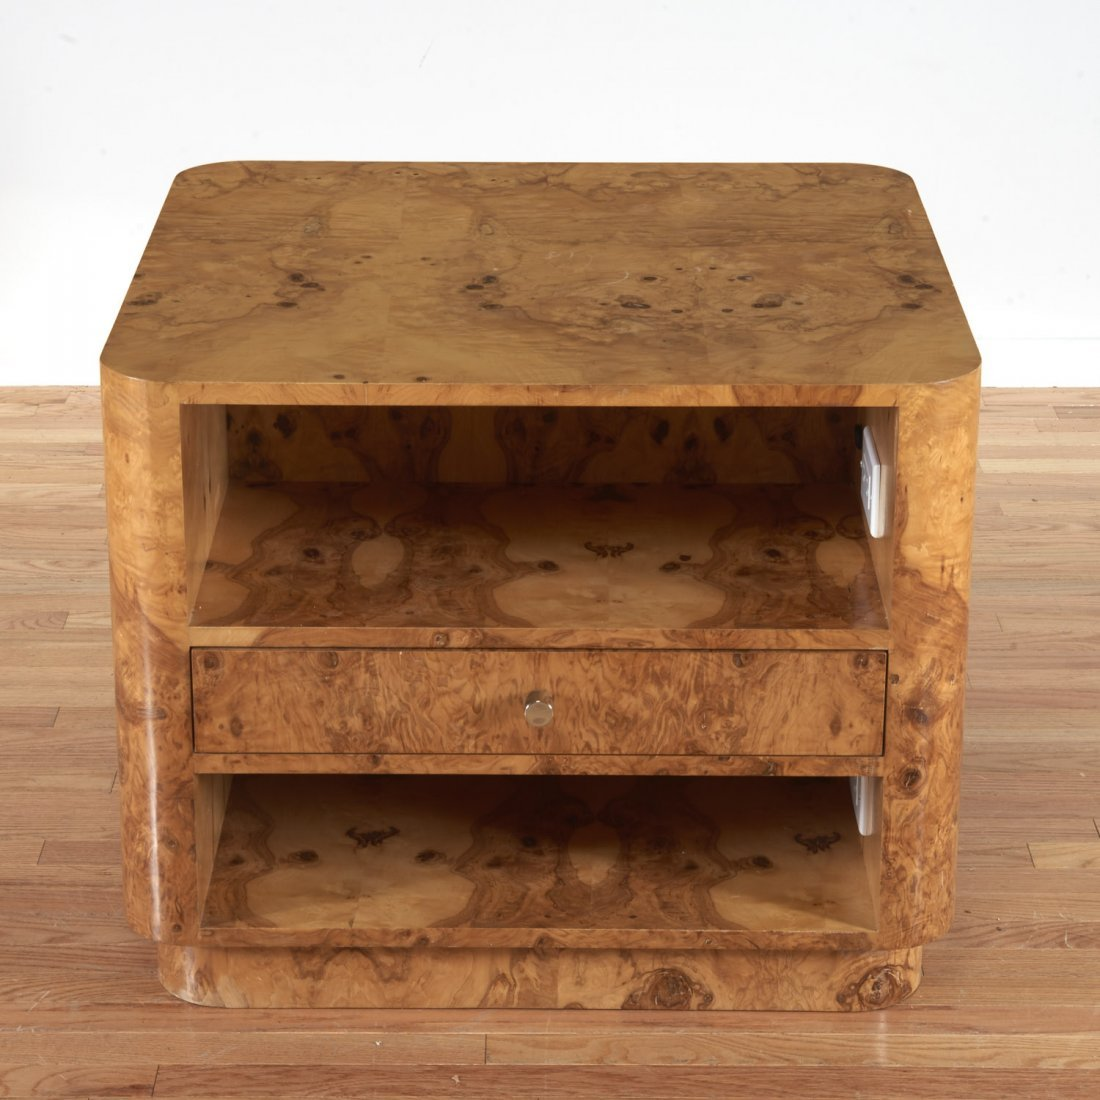 Pace style burl wood, chrome side table